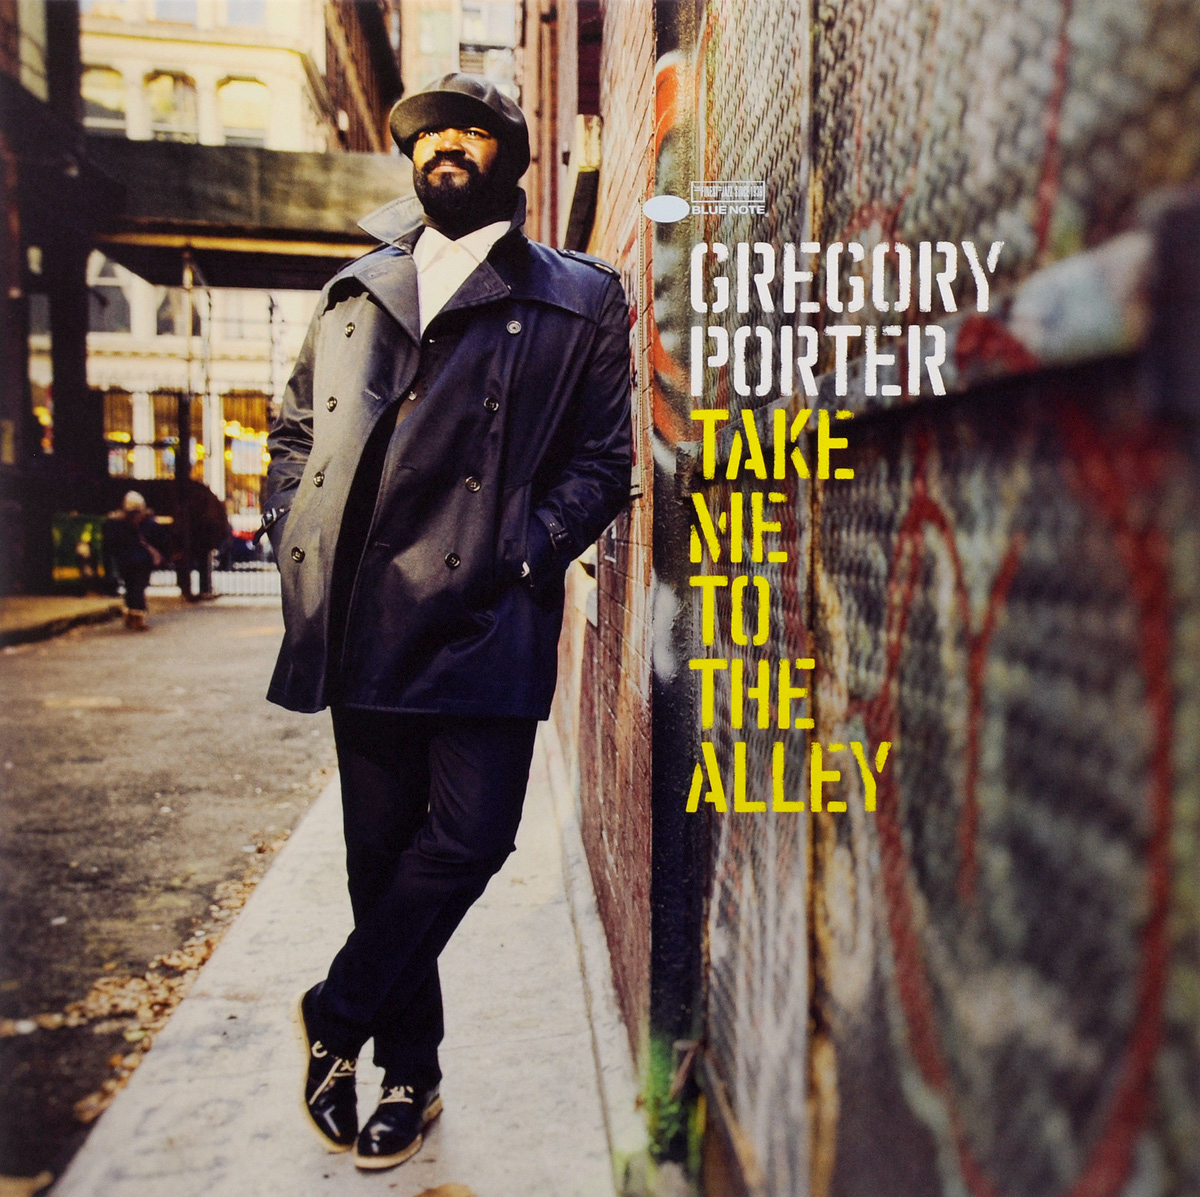 Грегори Портер Gregory Porter. Take Me To The Alley (2 LP) gregory porter gregory porter liquid spirit 2 lp